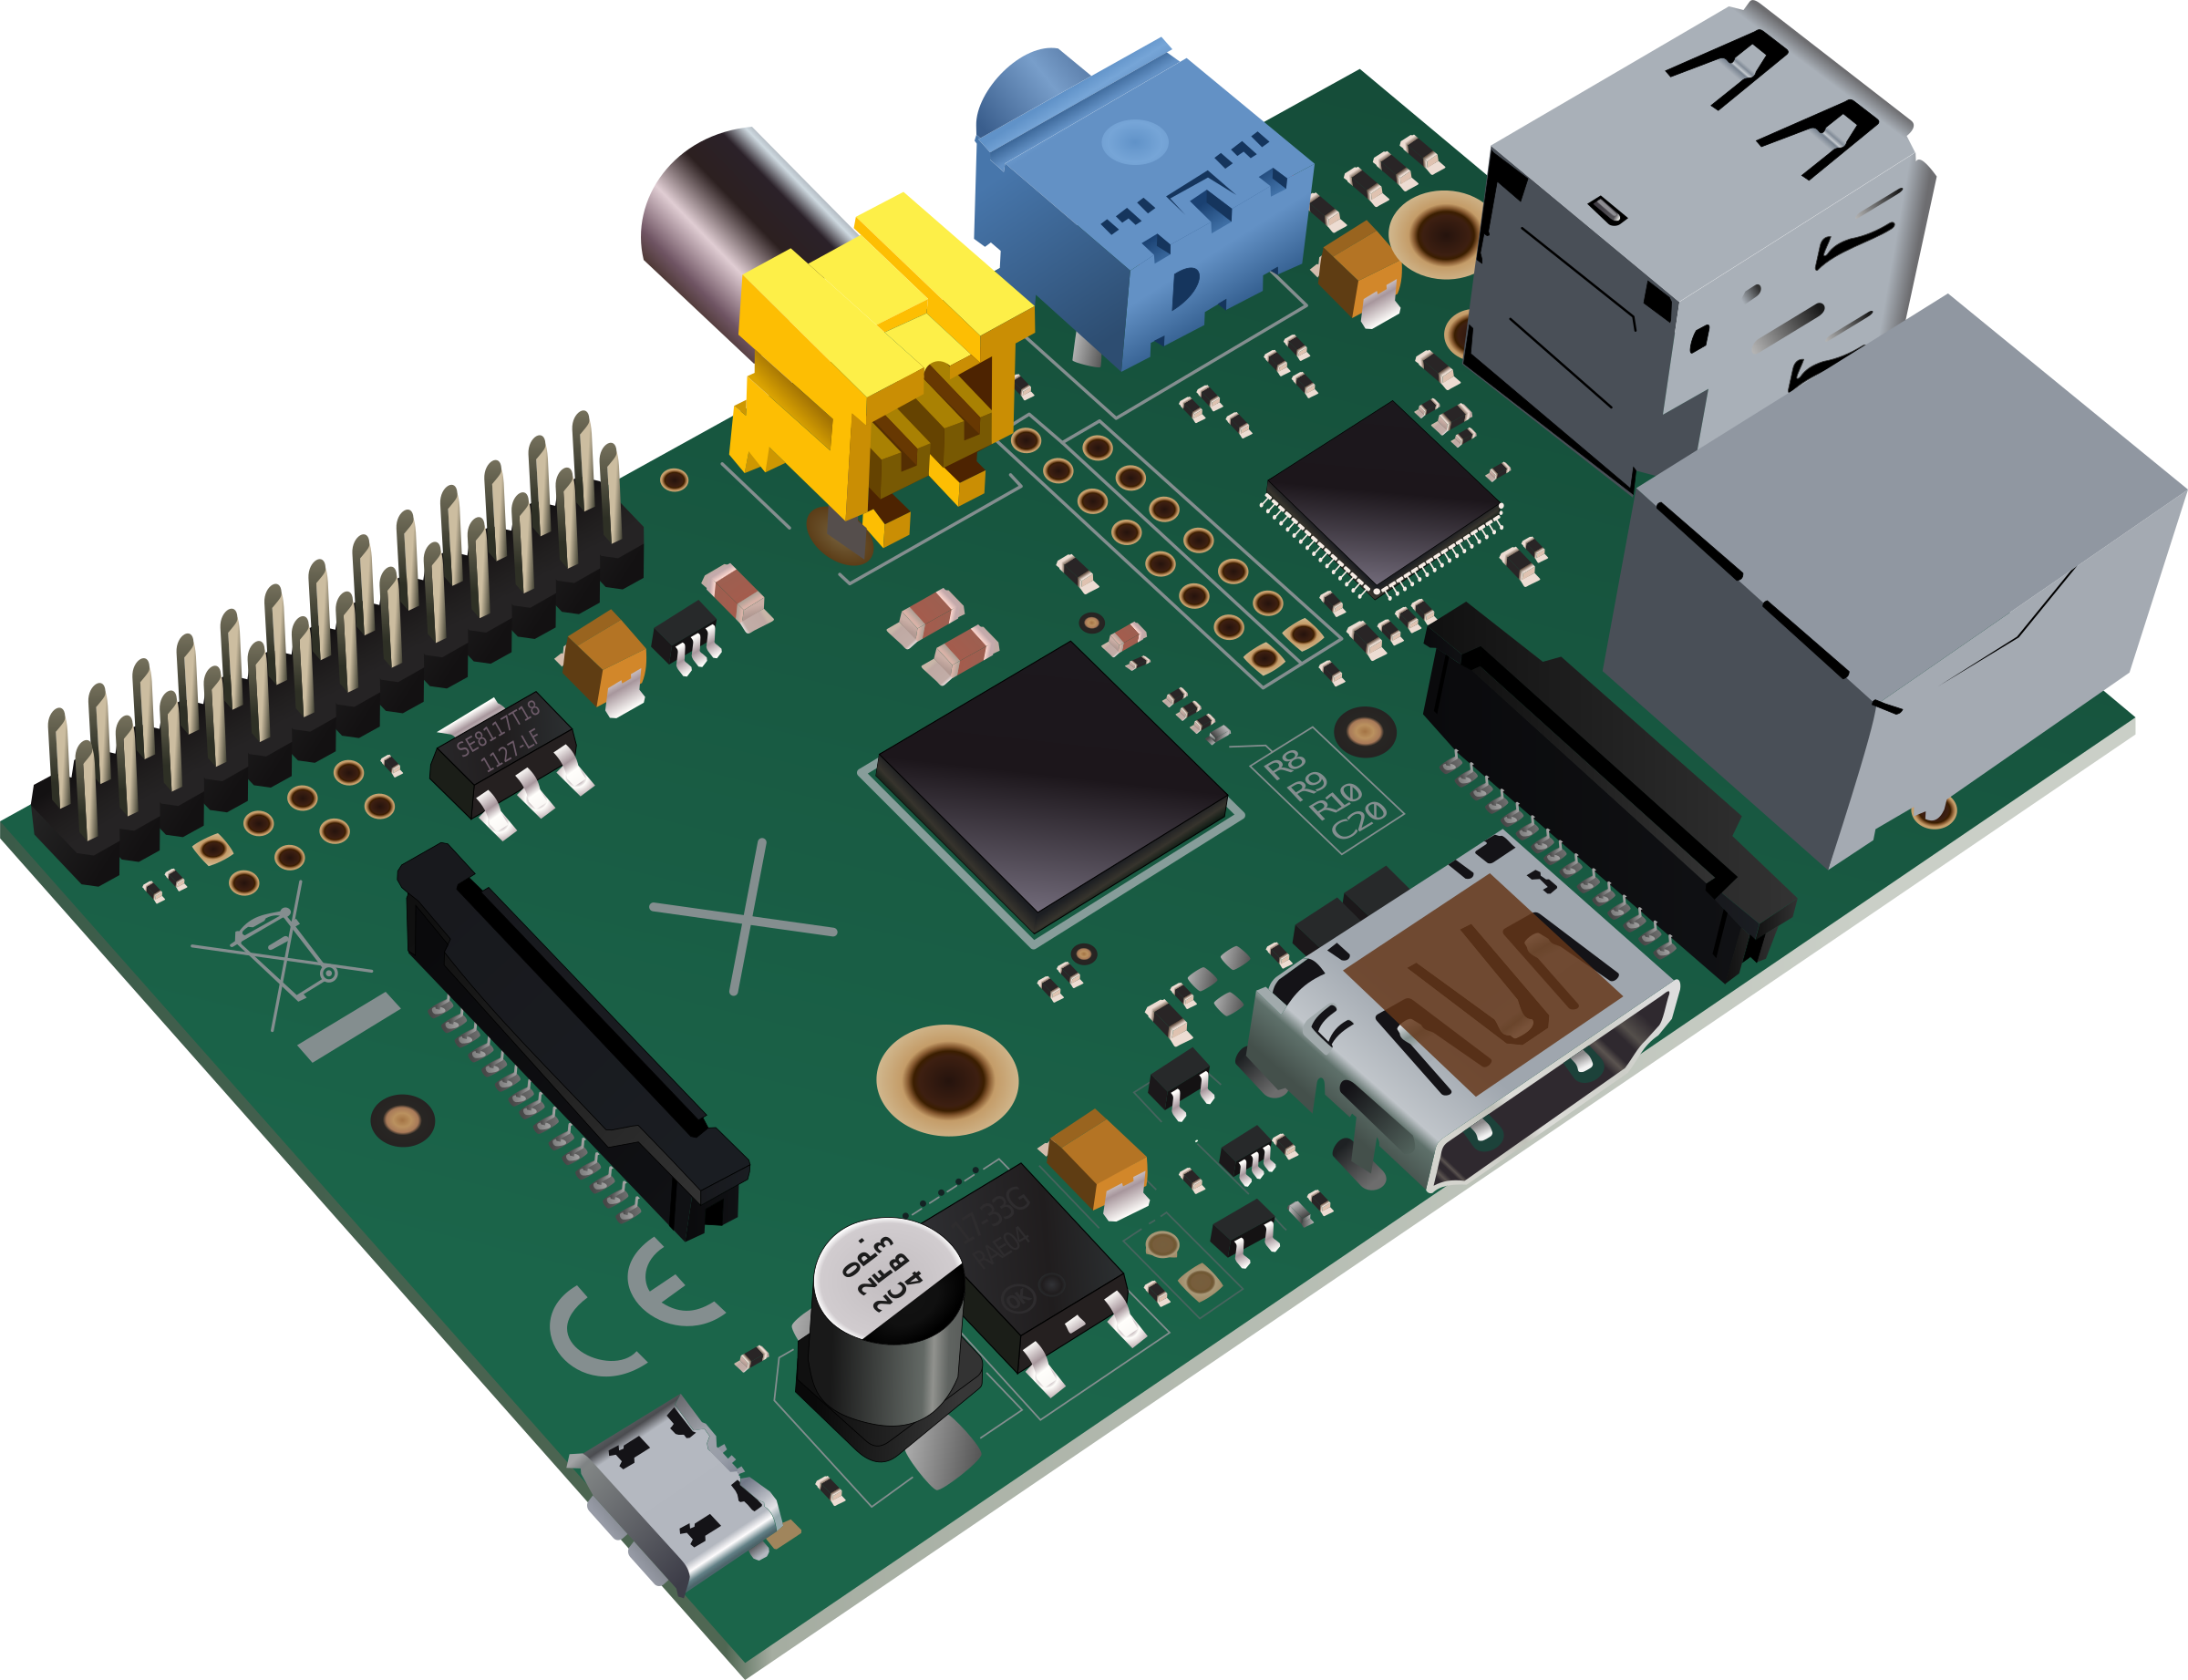 Raspberry pi 2 clipart picture free stock Clipart - Raspberry Pi type-B (no logo edition) picture free stock